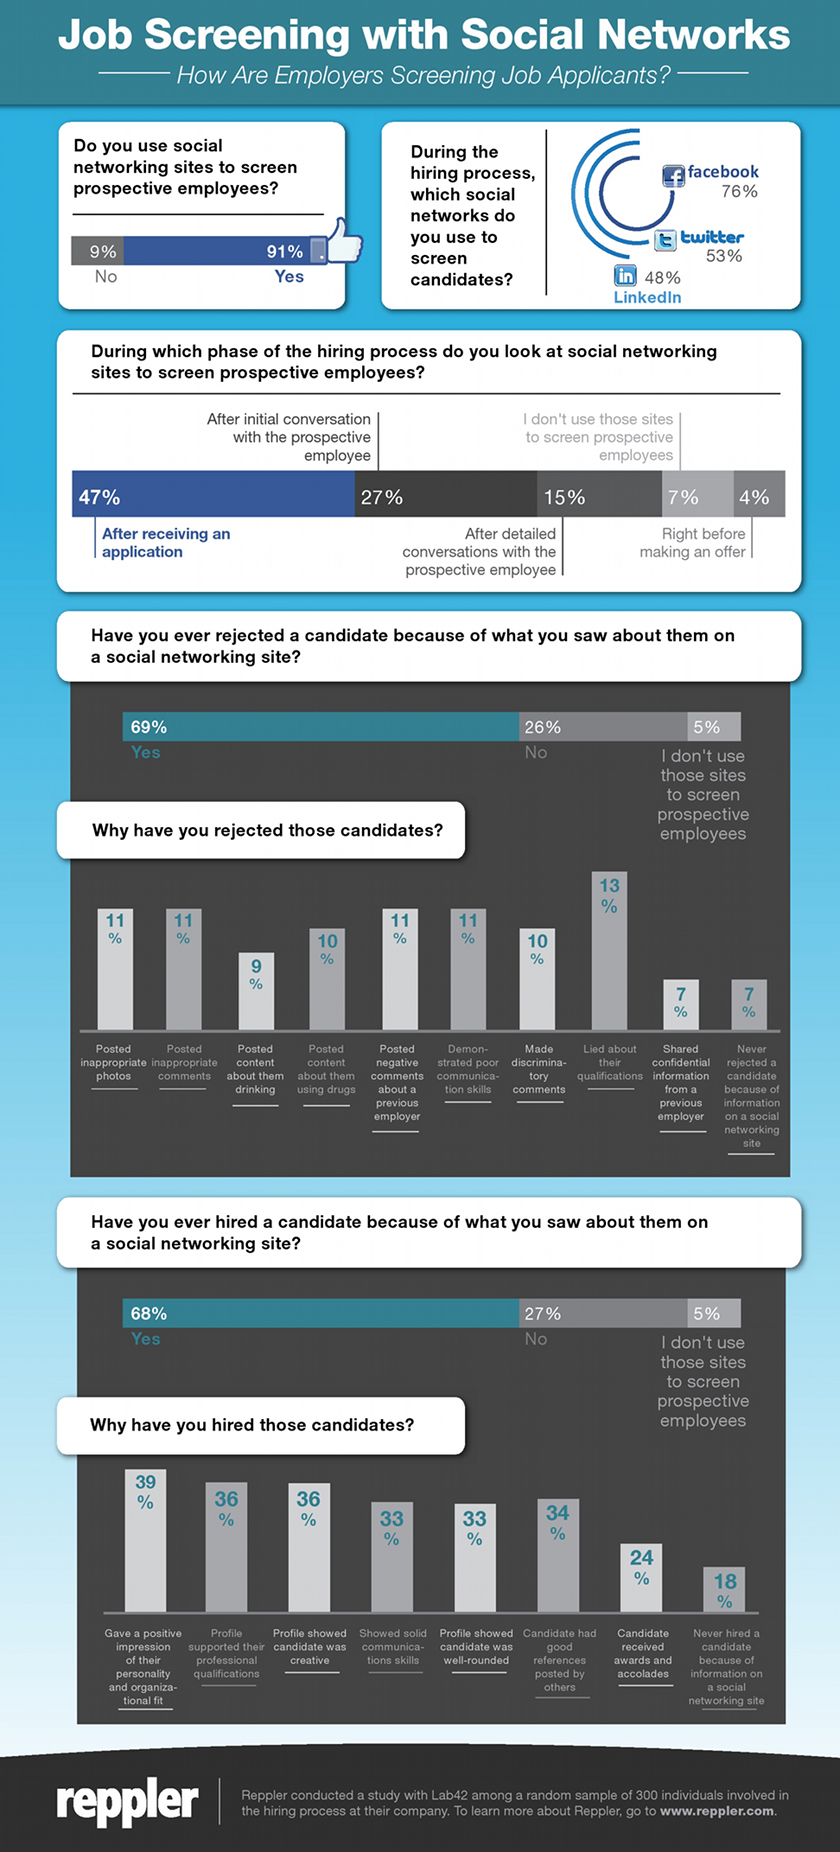 How Recruiters Use Social Networks to Screen Candidates - infographic